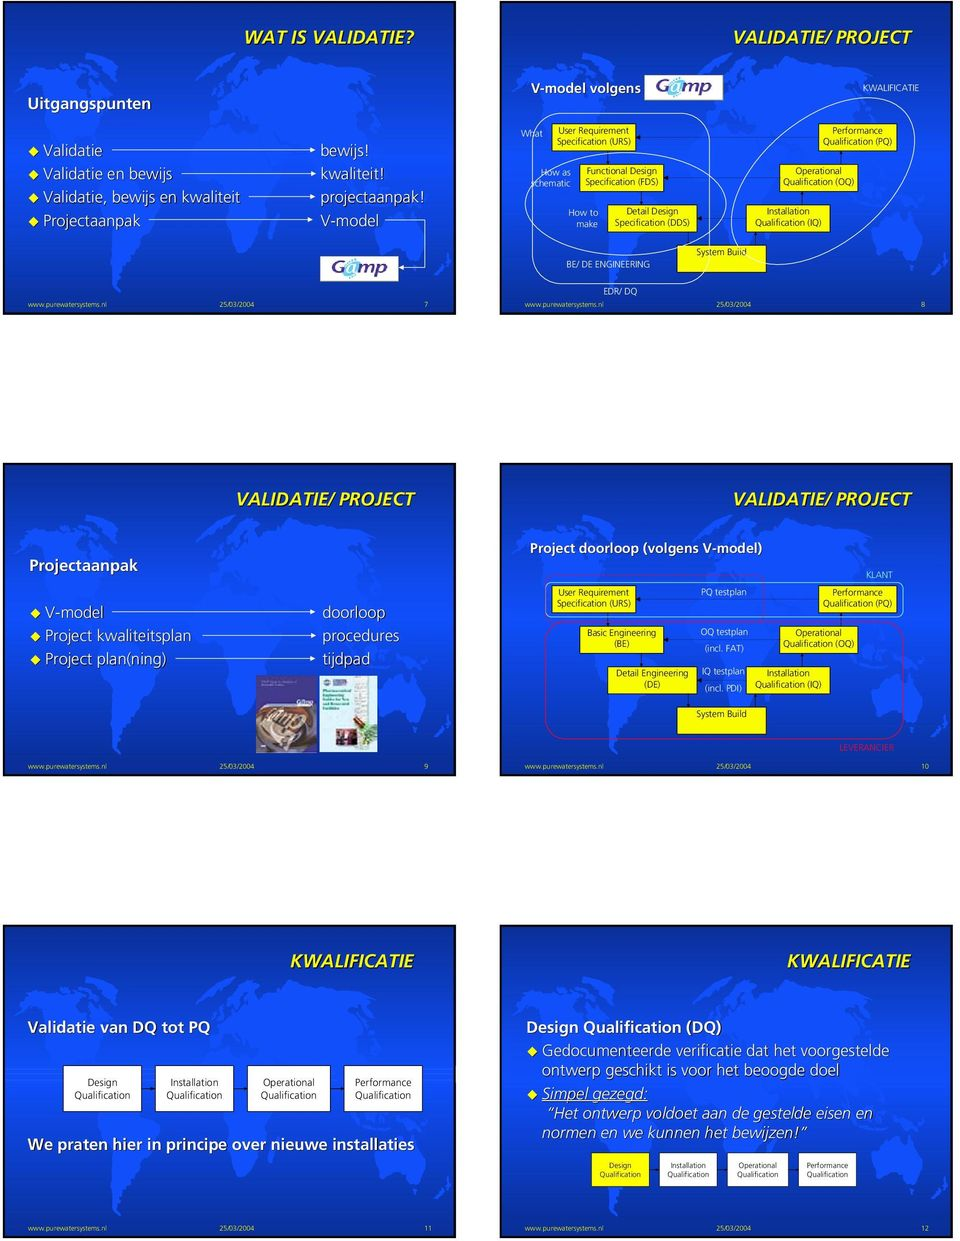 V-model Project kwaliteitsplan Project plan(ning) doorloop procedures tijdpad Project doorloop (volgens V-model) V PQ testplan OQ testplan (incl. FAT) IQ testplan (incl.